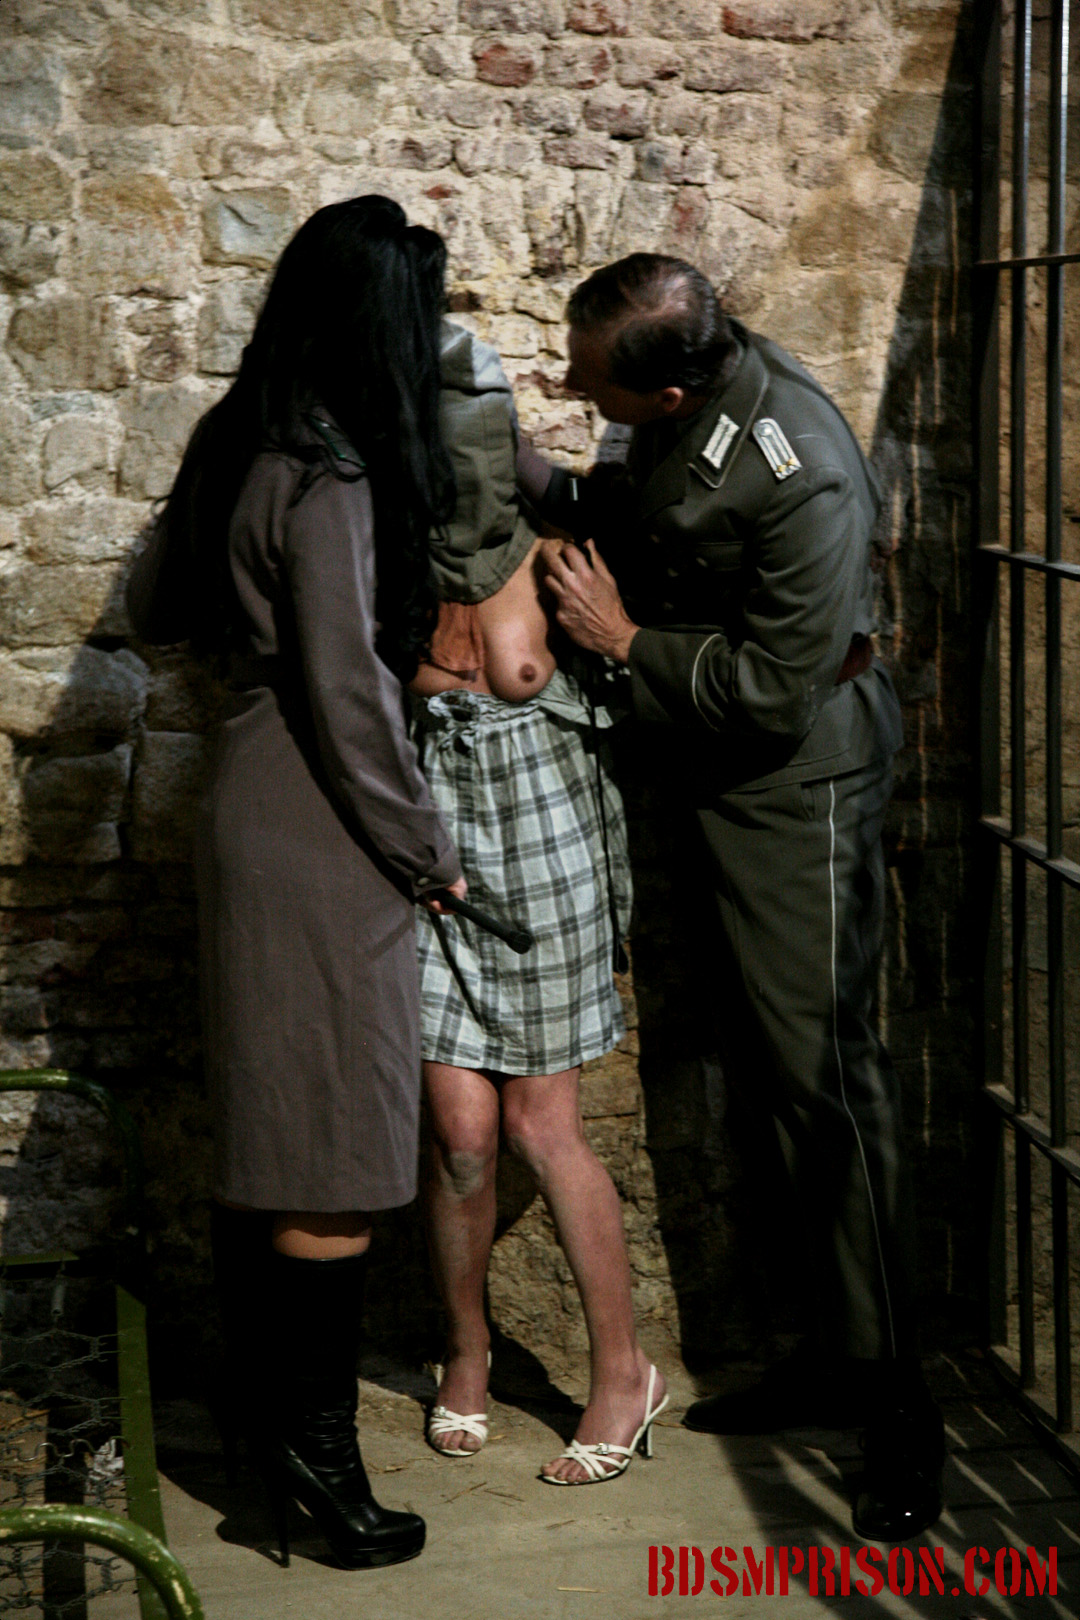 Domination bondage nipple anguished with mirela  mirela is caught on the grounds of reverend mothers property  a camera is found in her handbag  she says she s a reporter for the local newspaper  it seems she has criminal intent  she could be a spy she ha. Mirela is caught on the grounds of Reverend Mothers property. A camera is found in her handbag. She says she's a reporter for the local newspaper. It seems she has criminal intent. She could be a spy! She has earned punishment and must be imprisoned right away. Two guards pull her into an interrogation room, going through her purse. The find lipstick, brush and mirror, taunting her by smearing her face with paint and pulling her with cruel brush stroke.